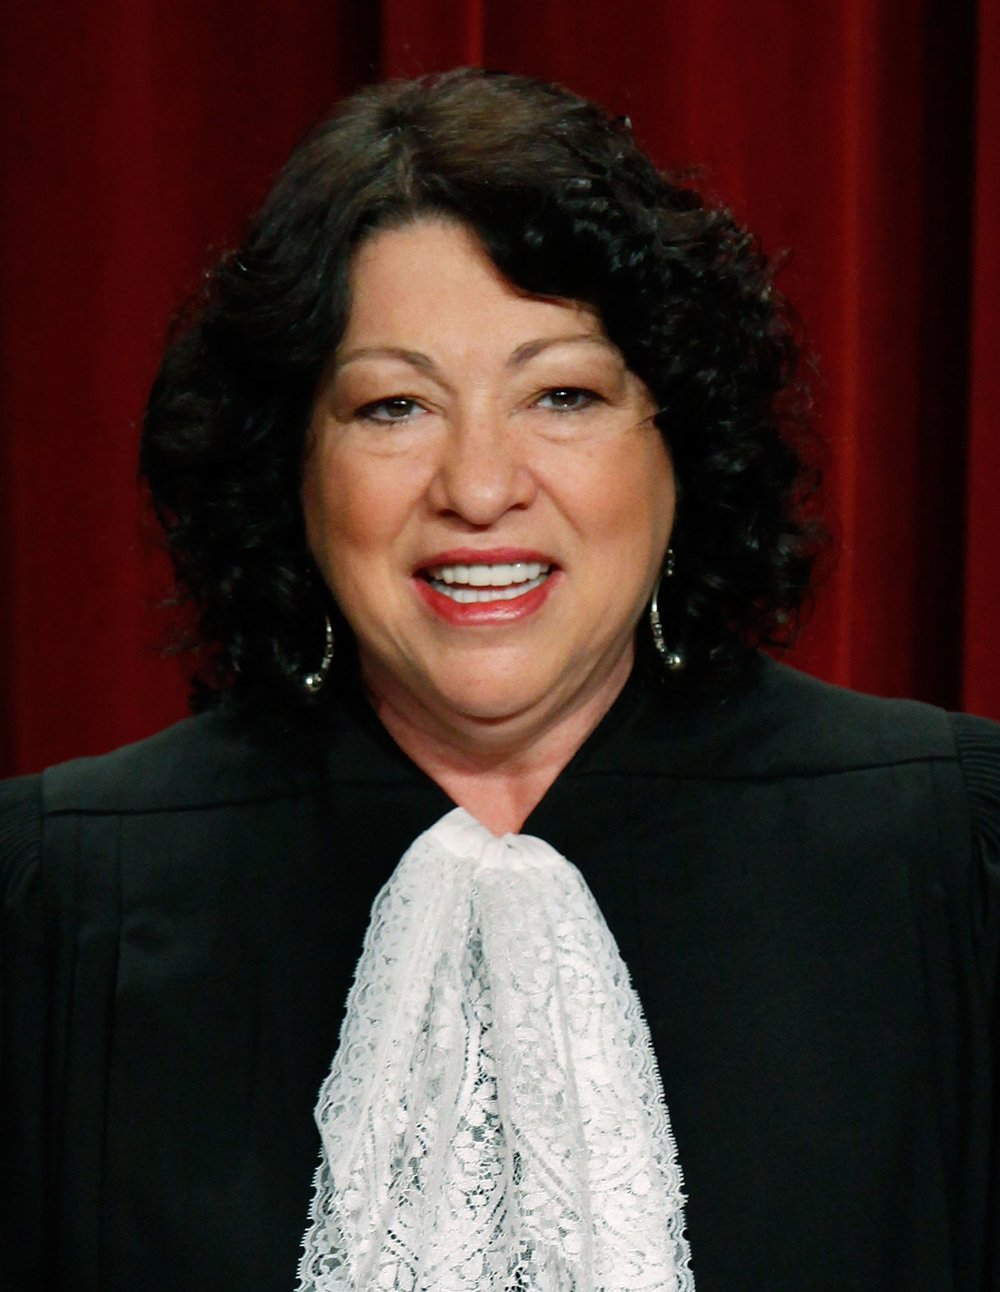 Sonia Sotomayor - Sonia Sotomayor became the first Supreme Court Justice in U.S history in 2009. She attended Ivy league schools Princeton and Yale.